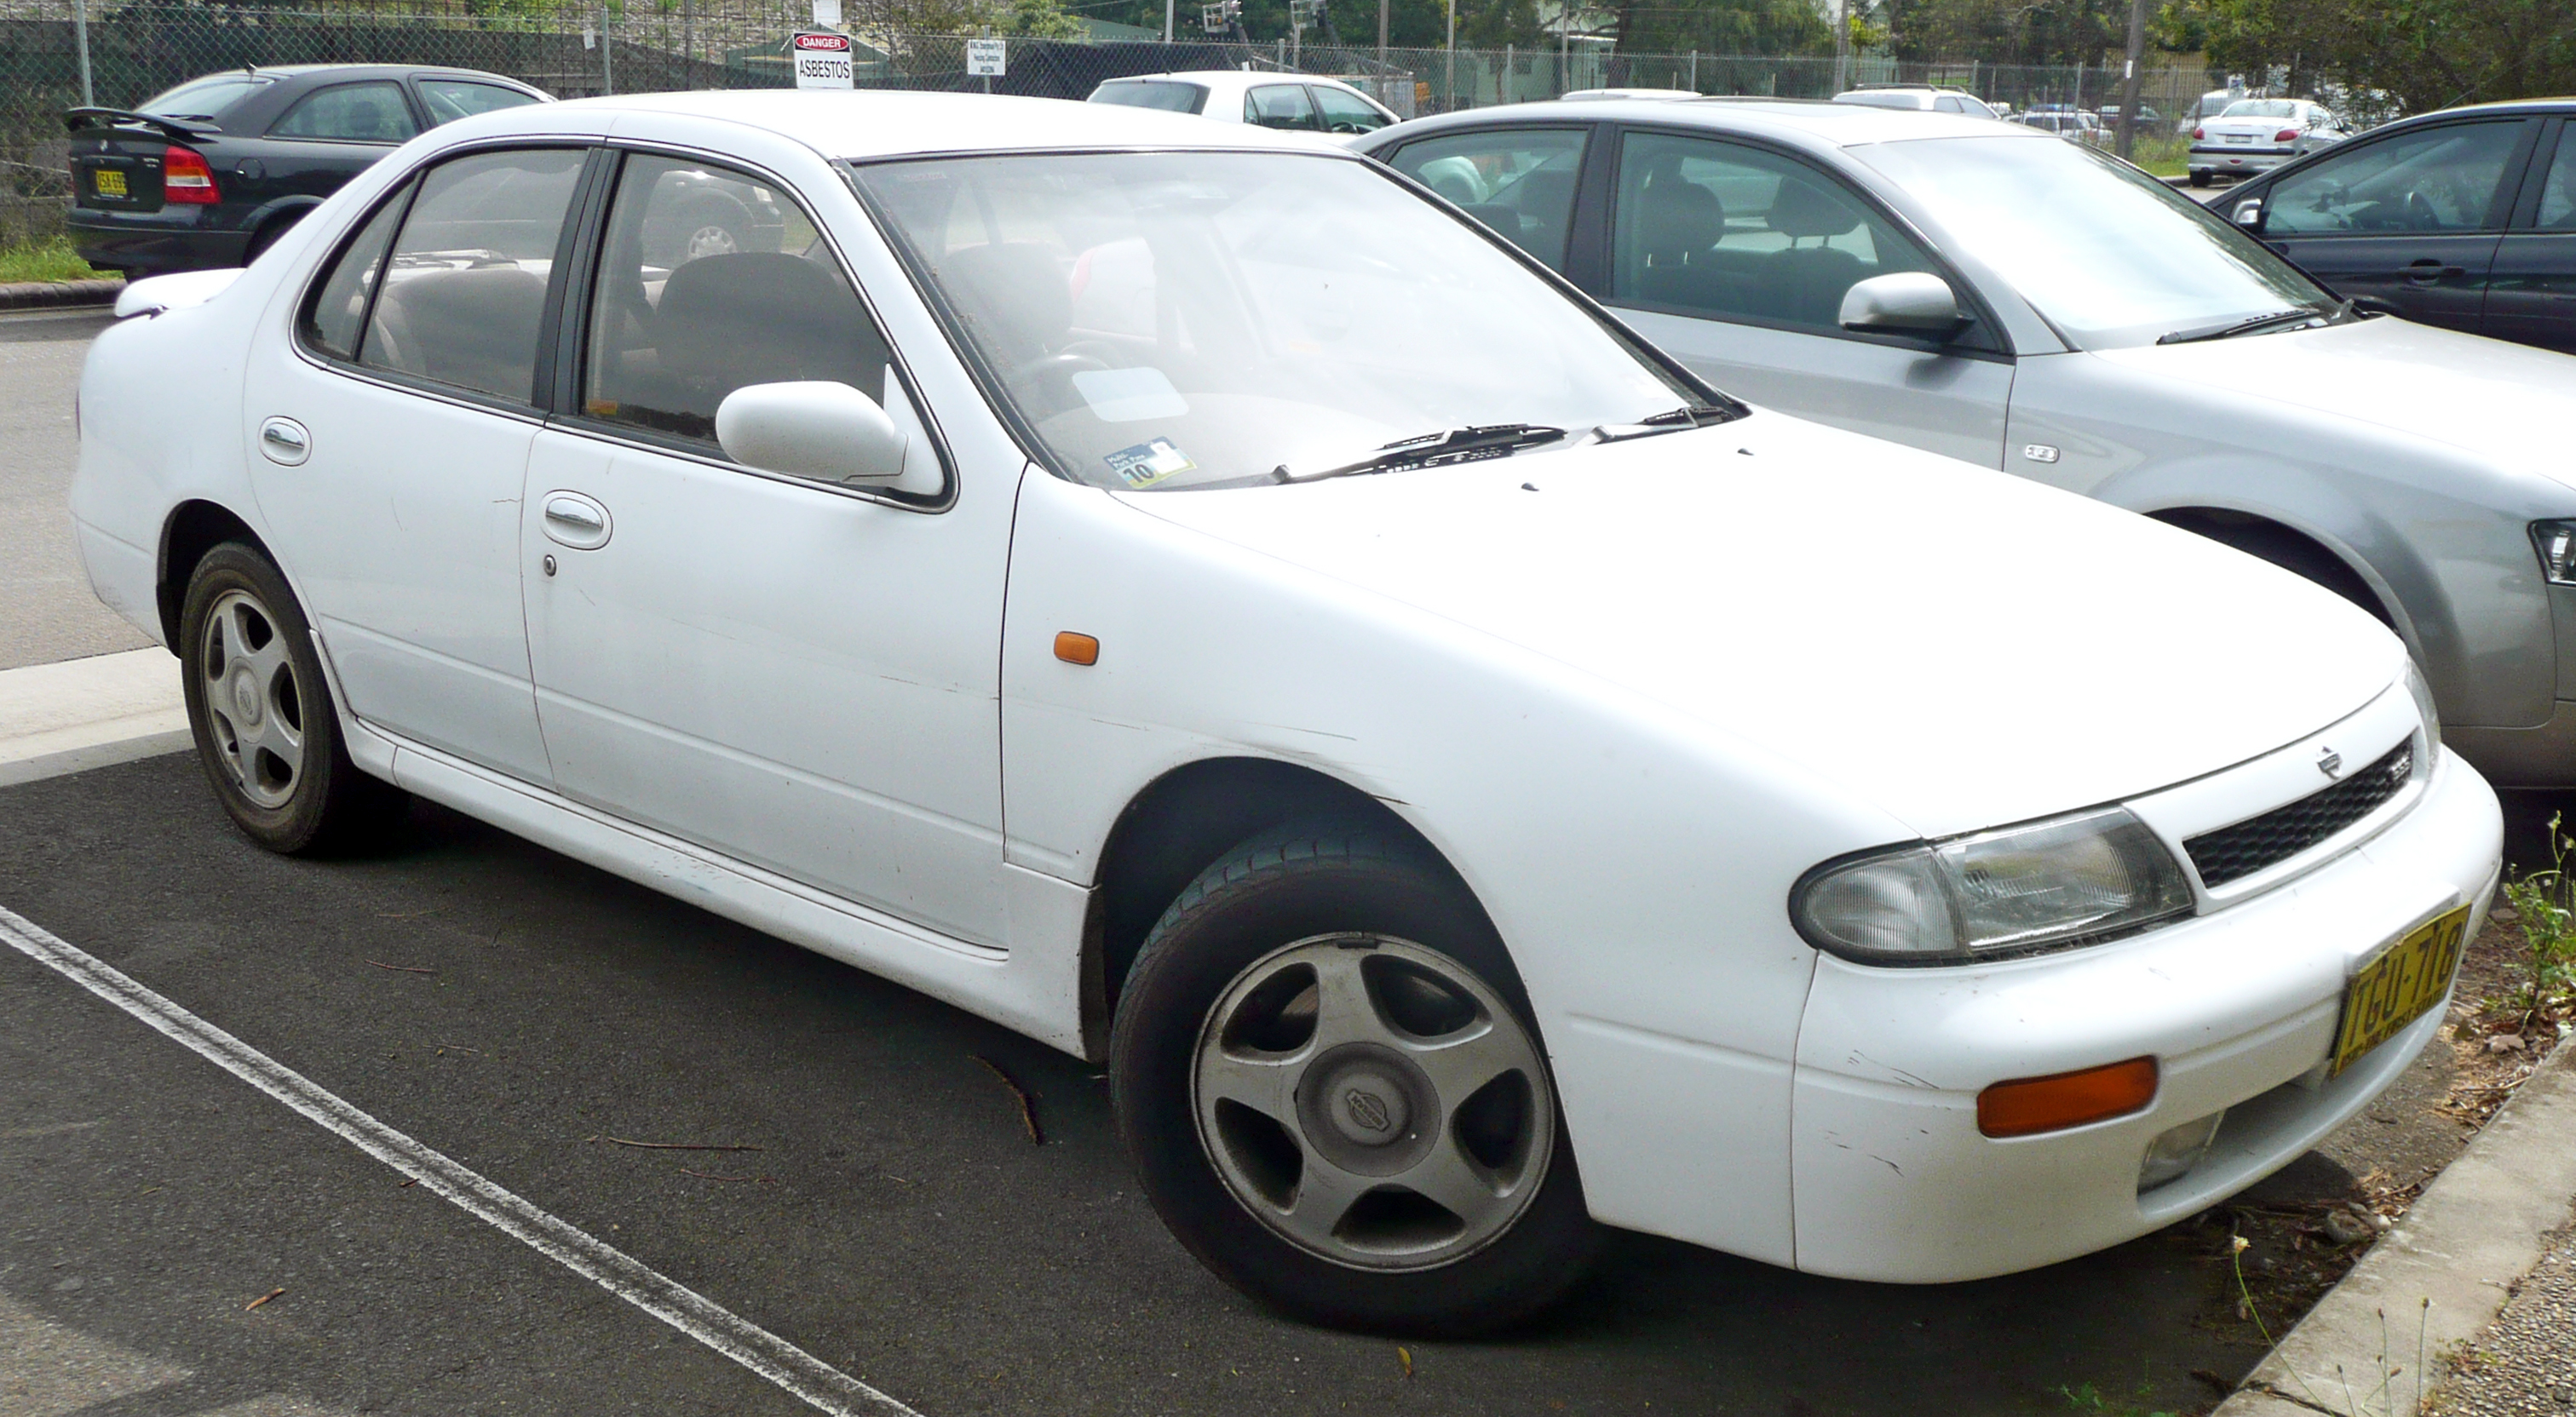 1994 nissan bluebird (u13) pictures, information and specs Nissan SSS nissan bluebird u13 wiring diagram